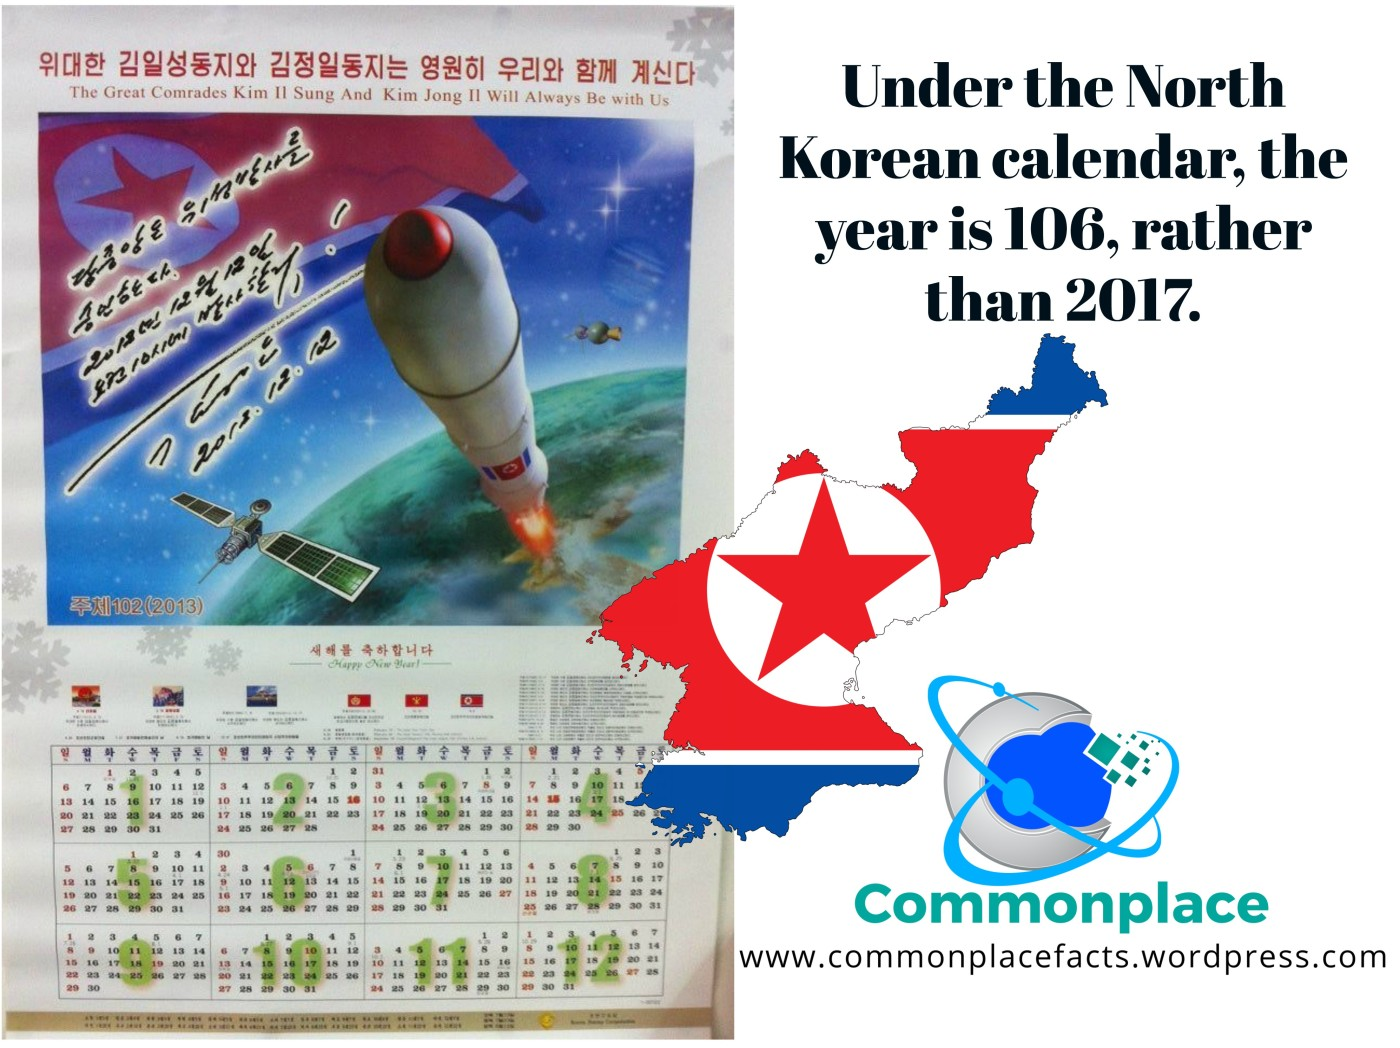 #NorthKorea #Juche #calendar #dates #funfacts